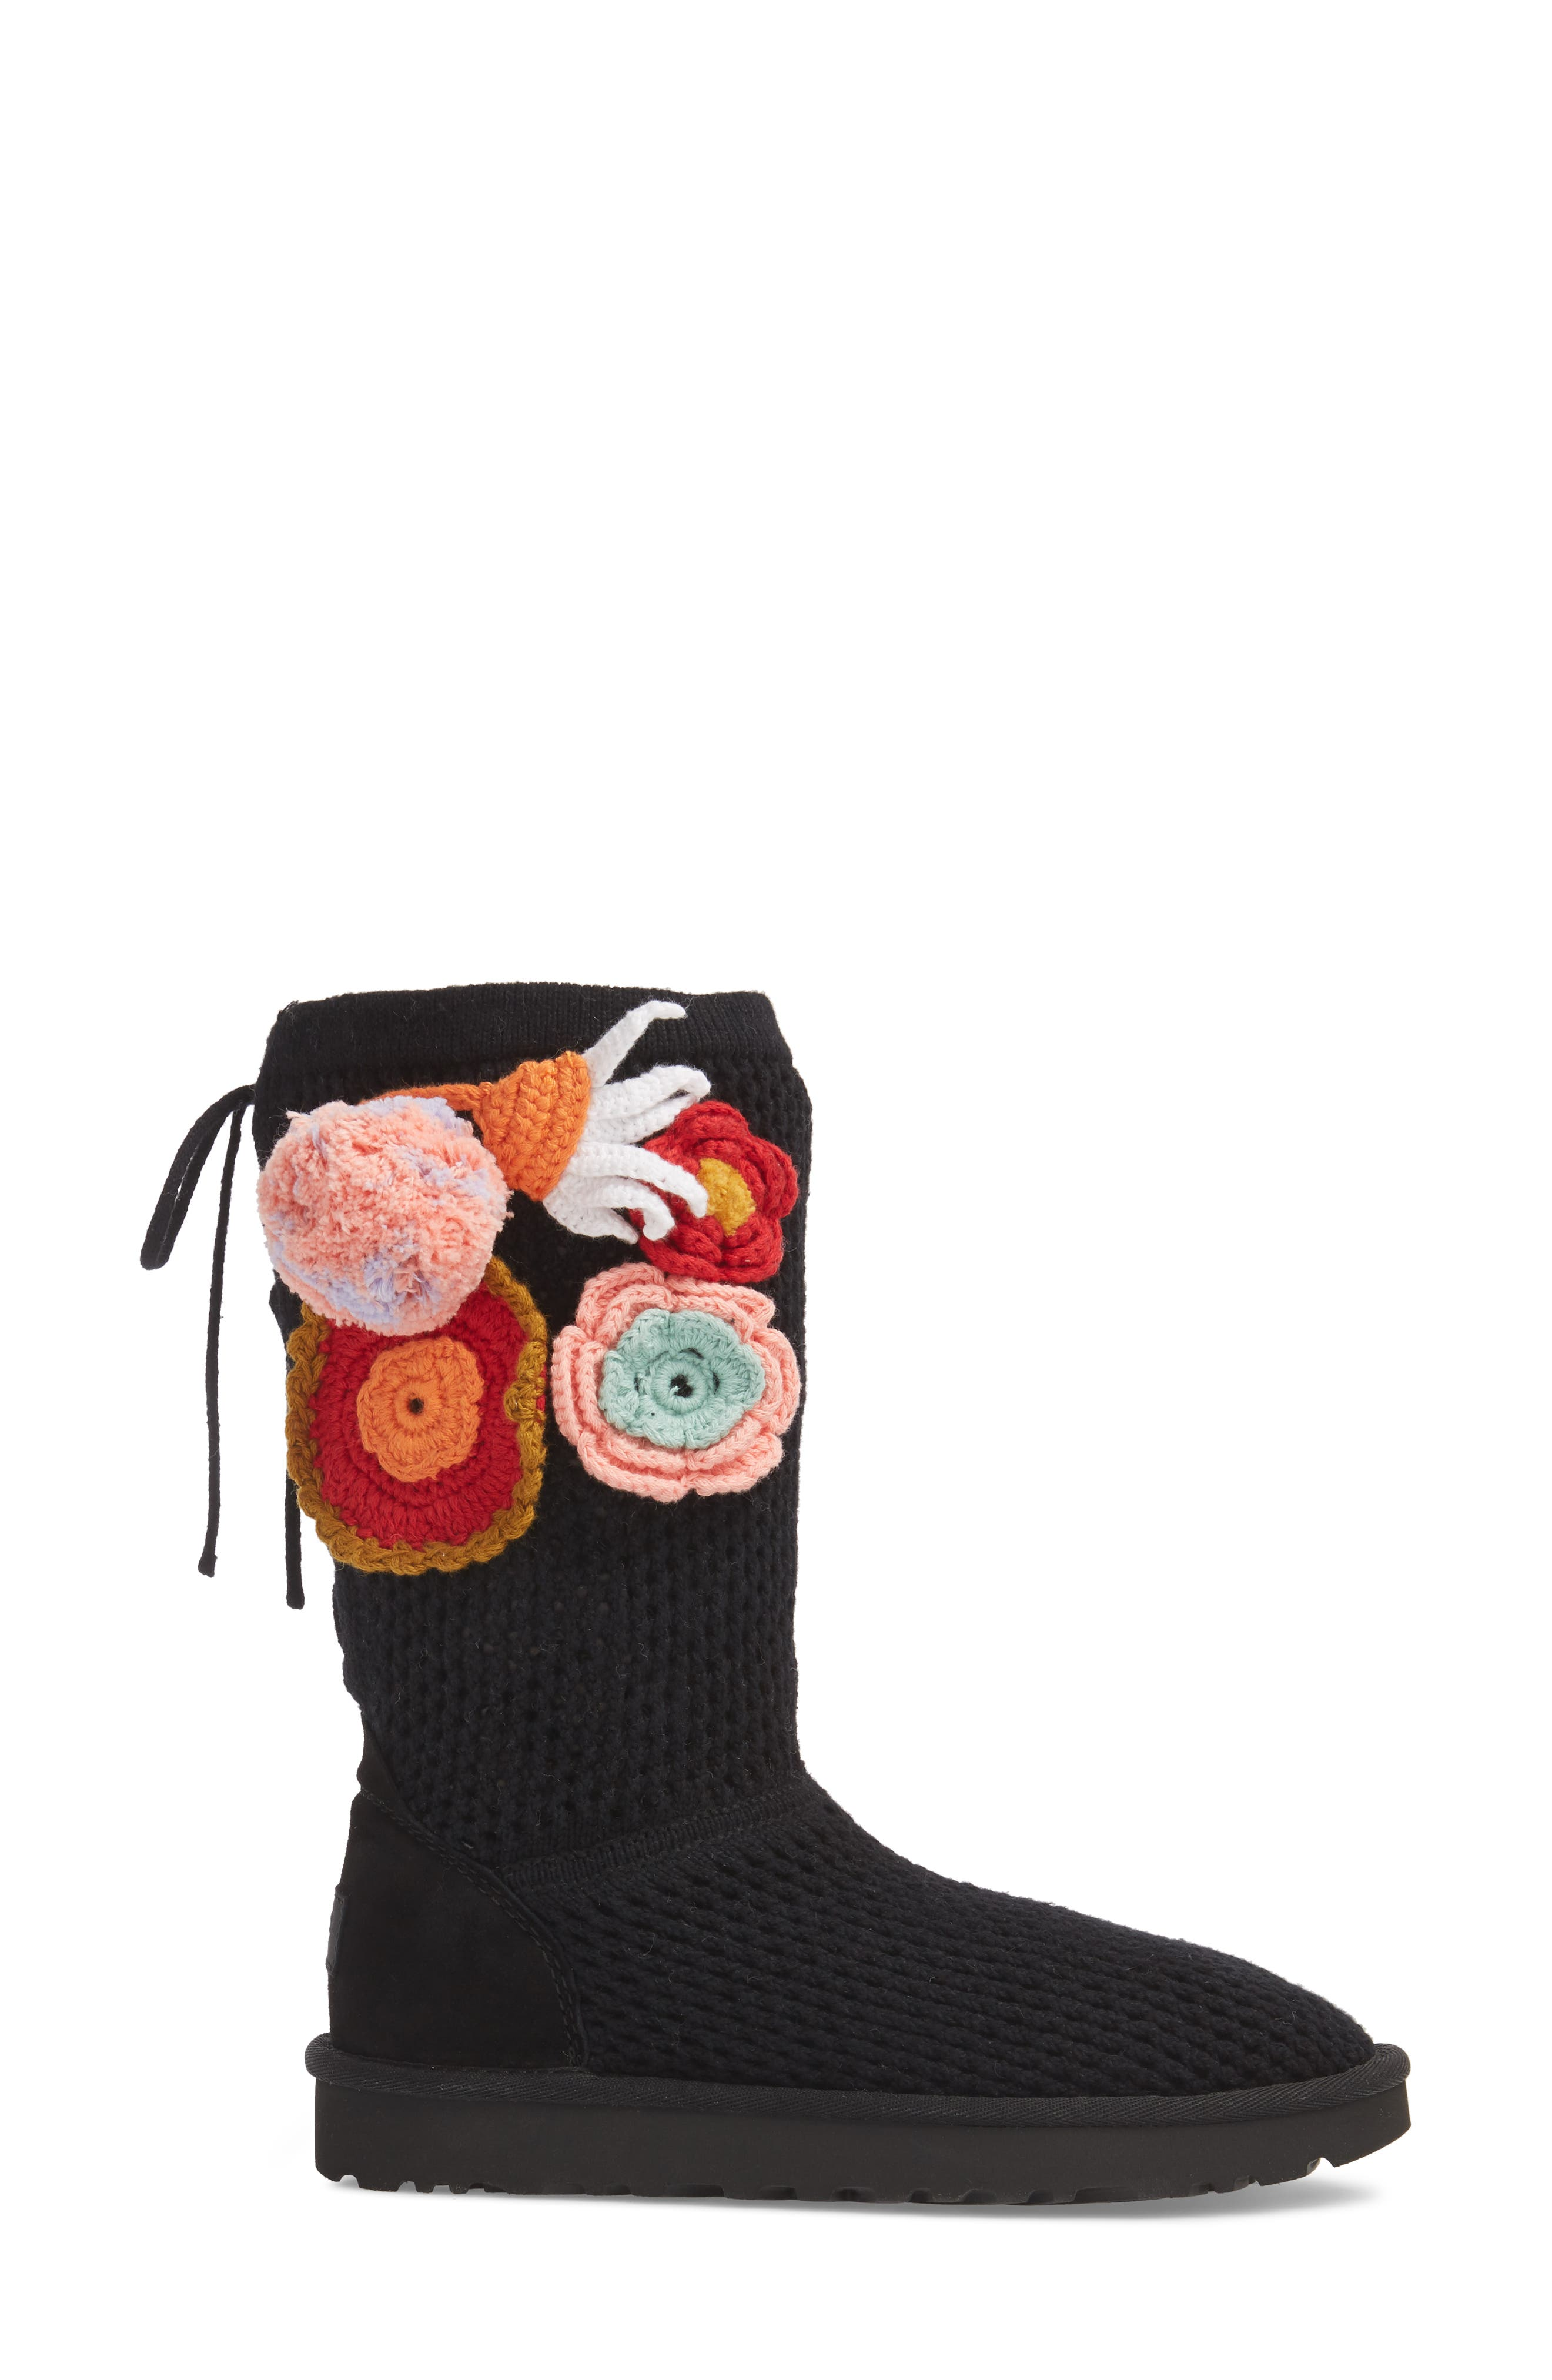 Crochet Classic Tall Boot,                             Alternate thumbnail 3, color,                             Black